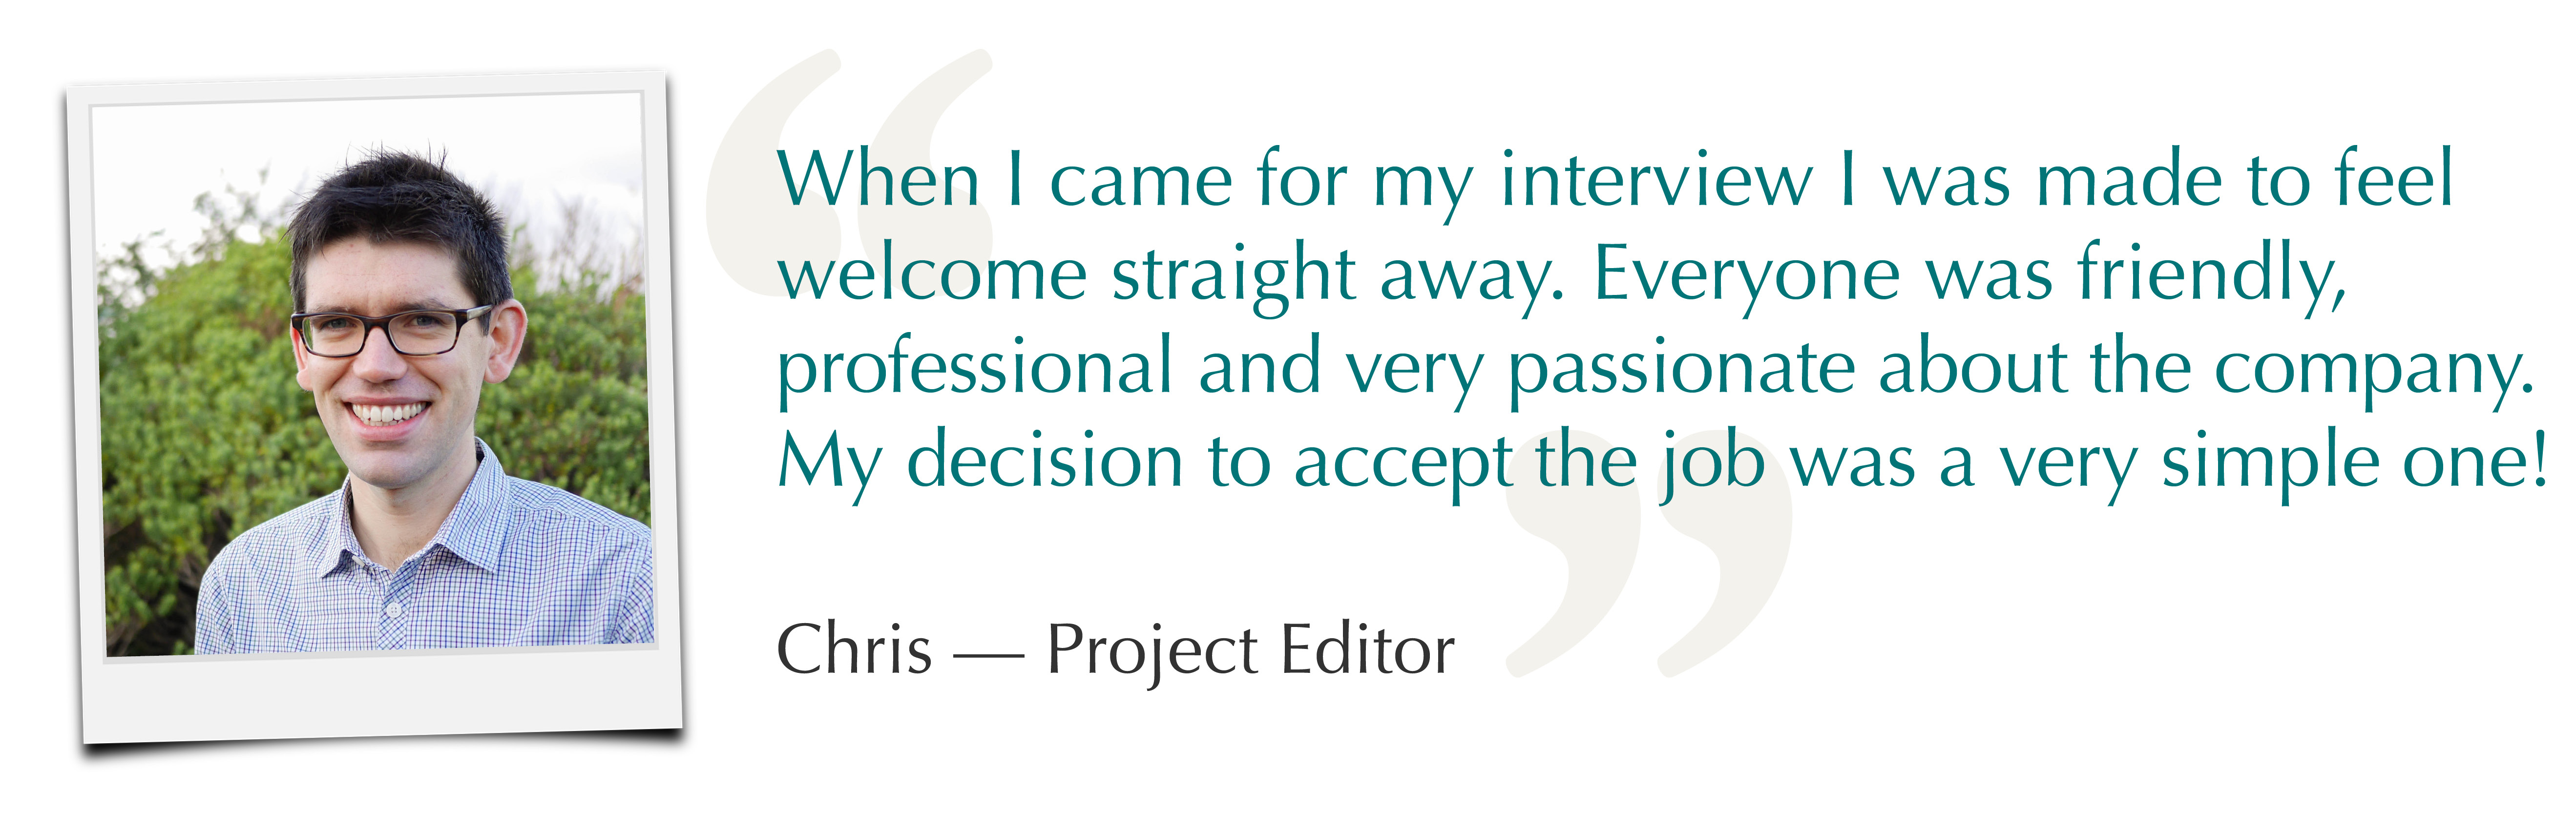 Chris - Project Editor